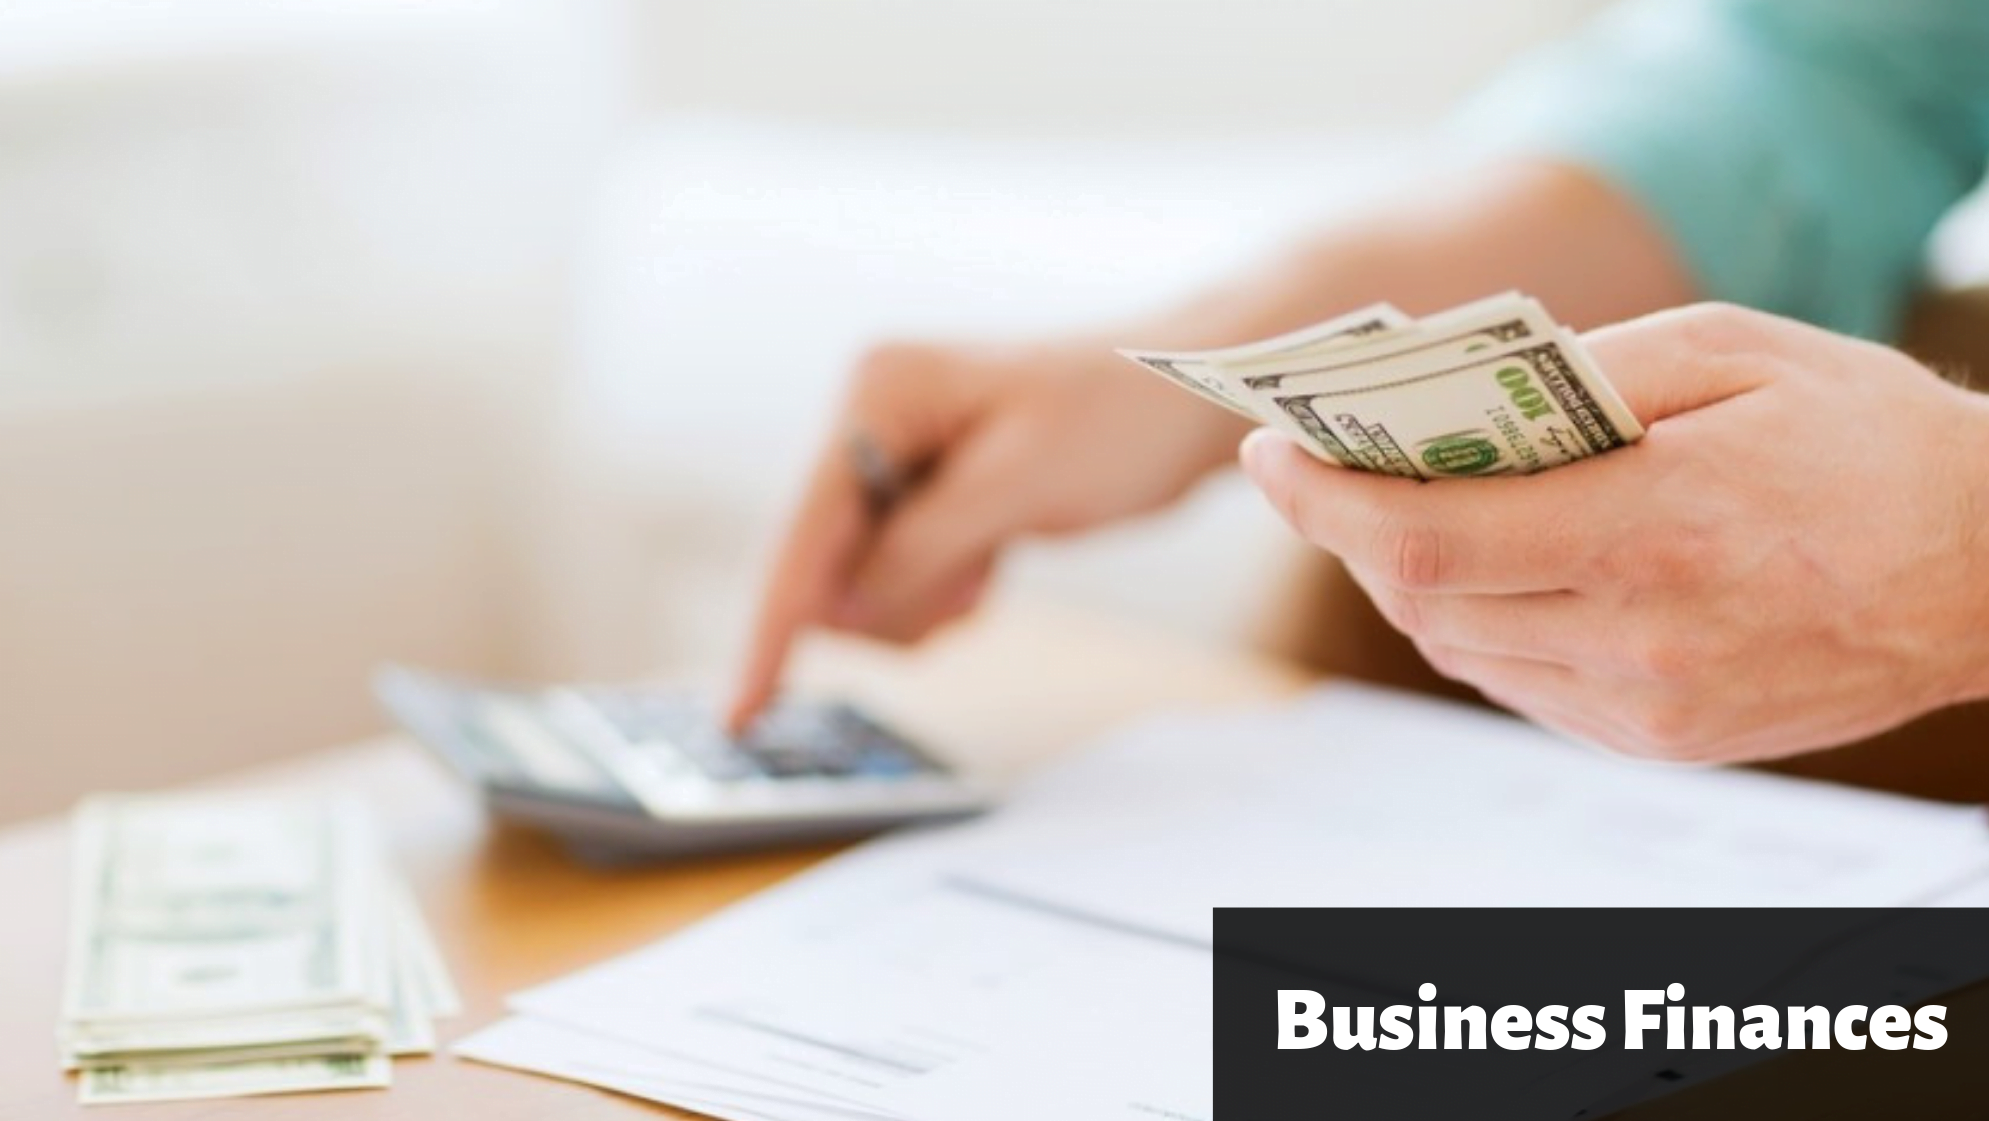 Invest significant time for Your Business Finances